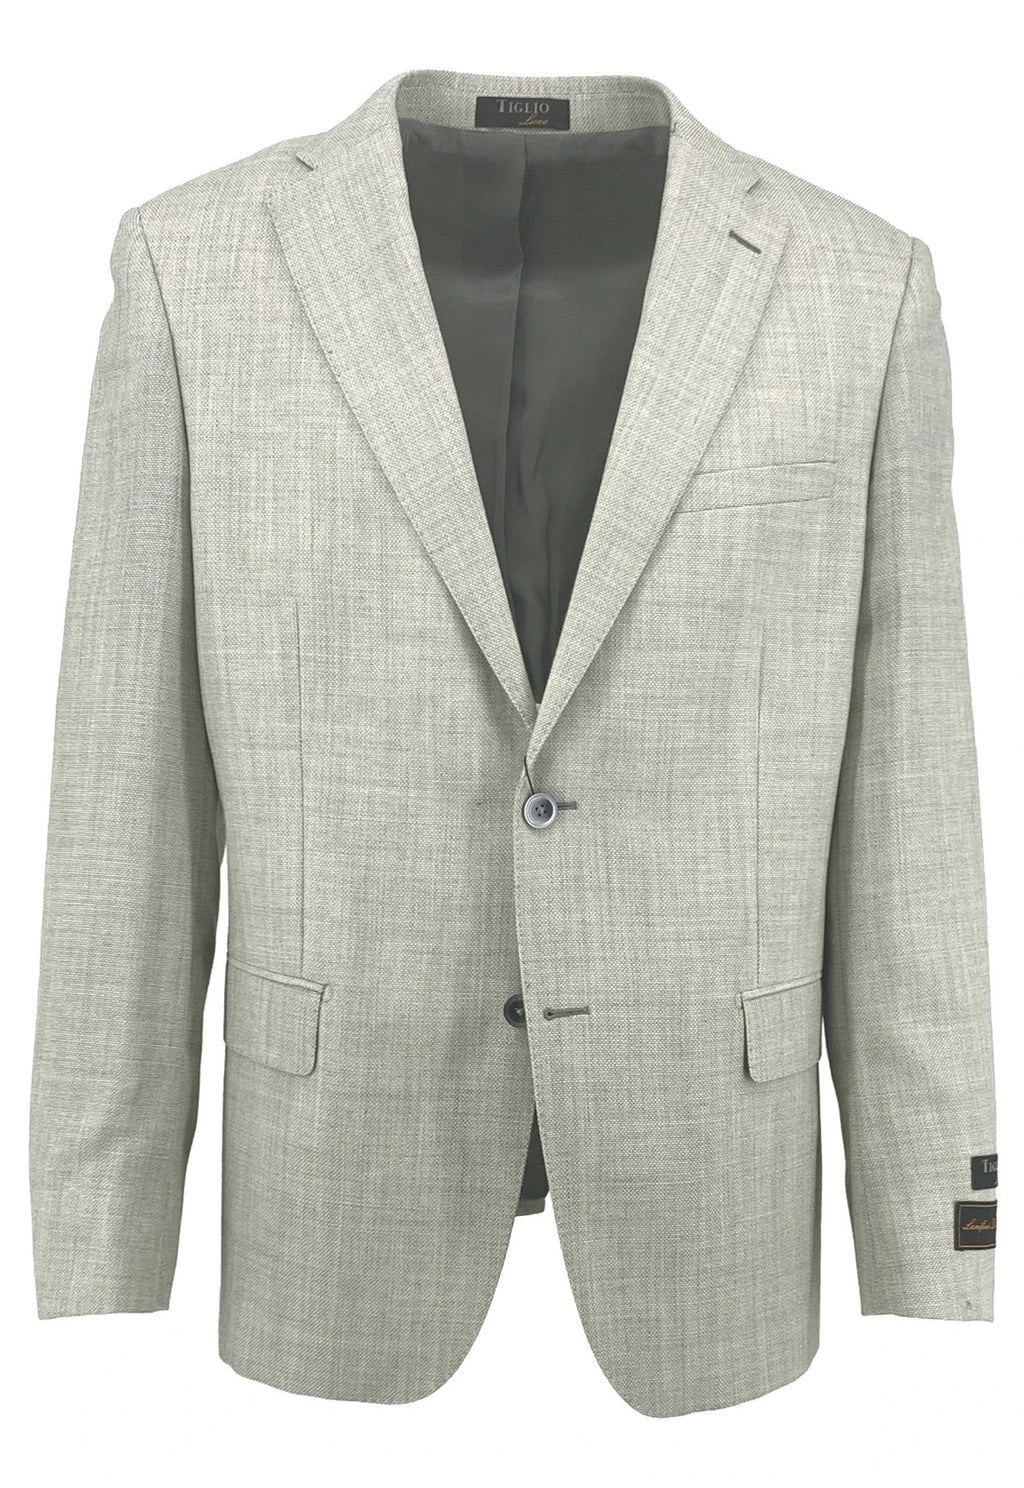 Dolcetto Oatmeal-Gray Modern Fit, Pure Wool Jacket by Tiglio Luxe TL10.712/192